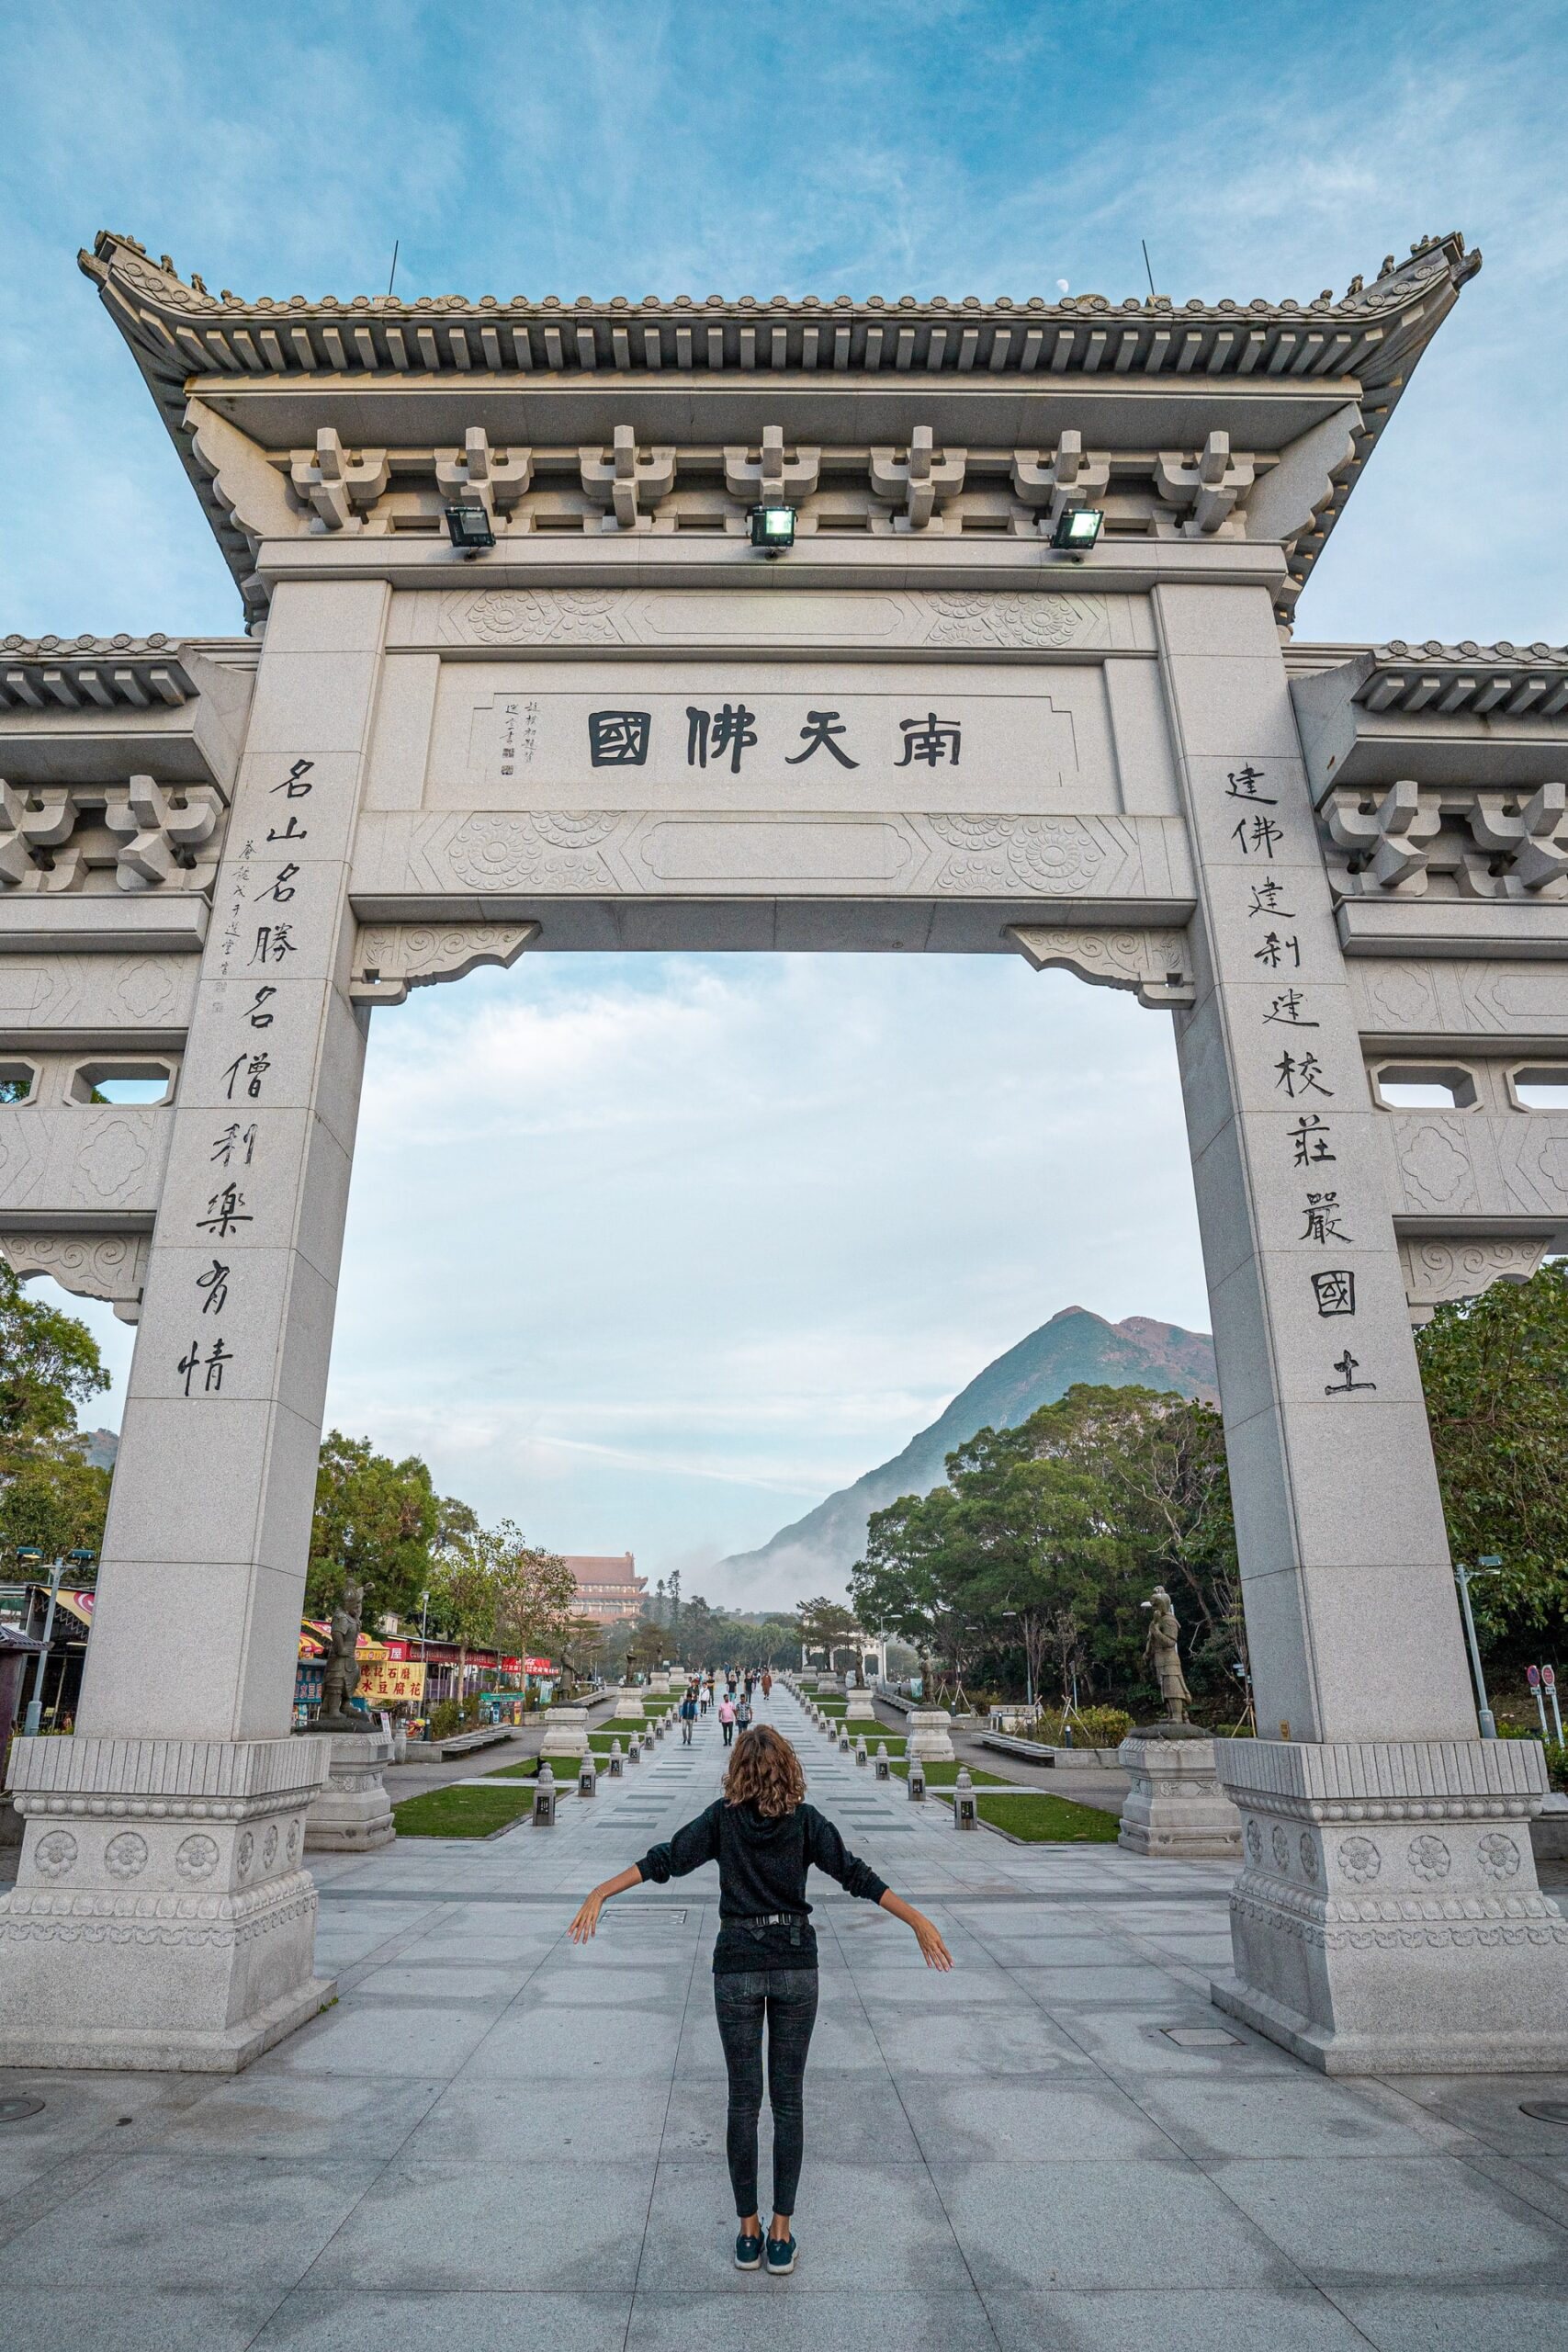 passing under the gate with mountain views in Lantau Island Hong Kong